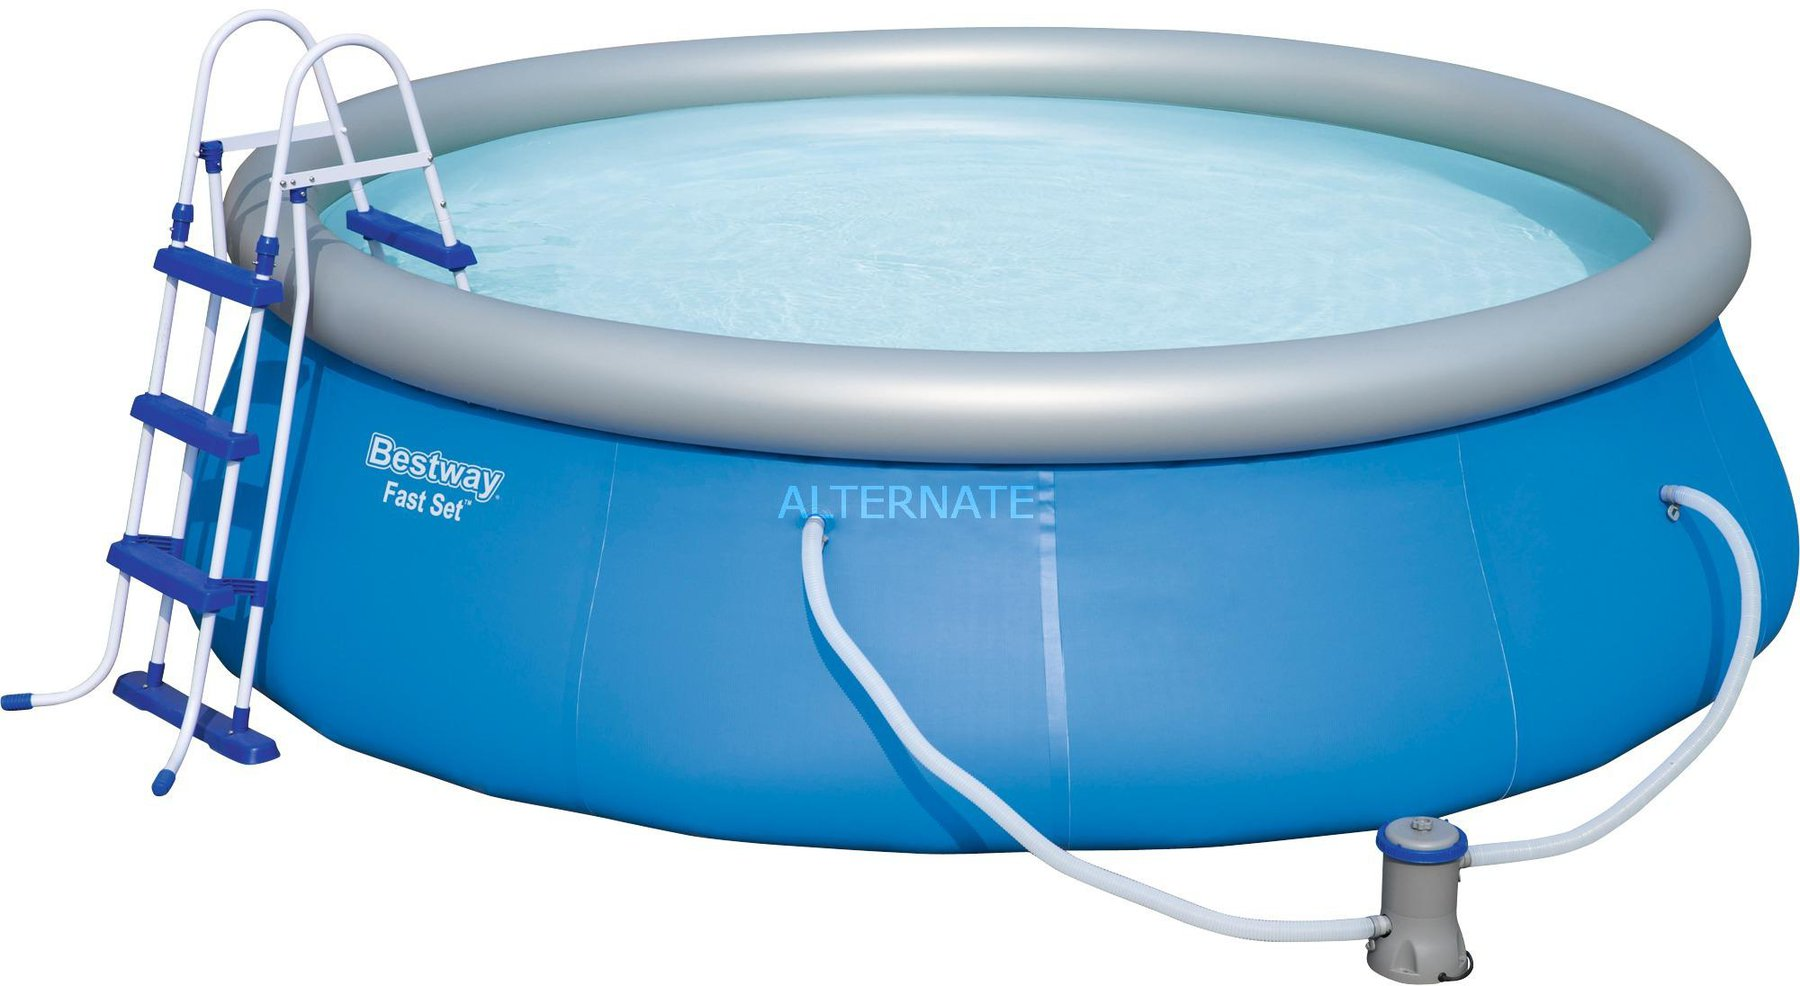 Pool Komplettset Amazon Bestway Fast Set Pool 366 X 91 Cm